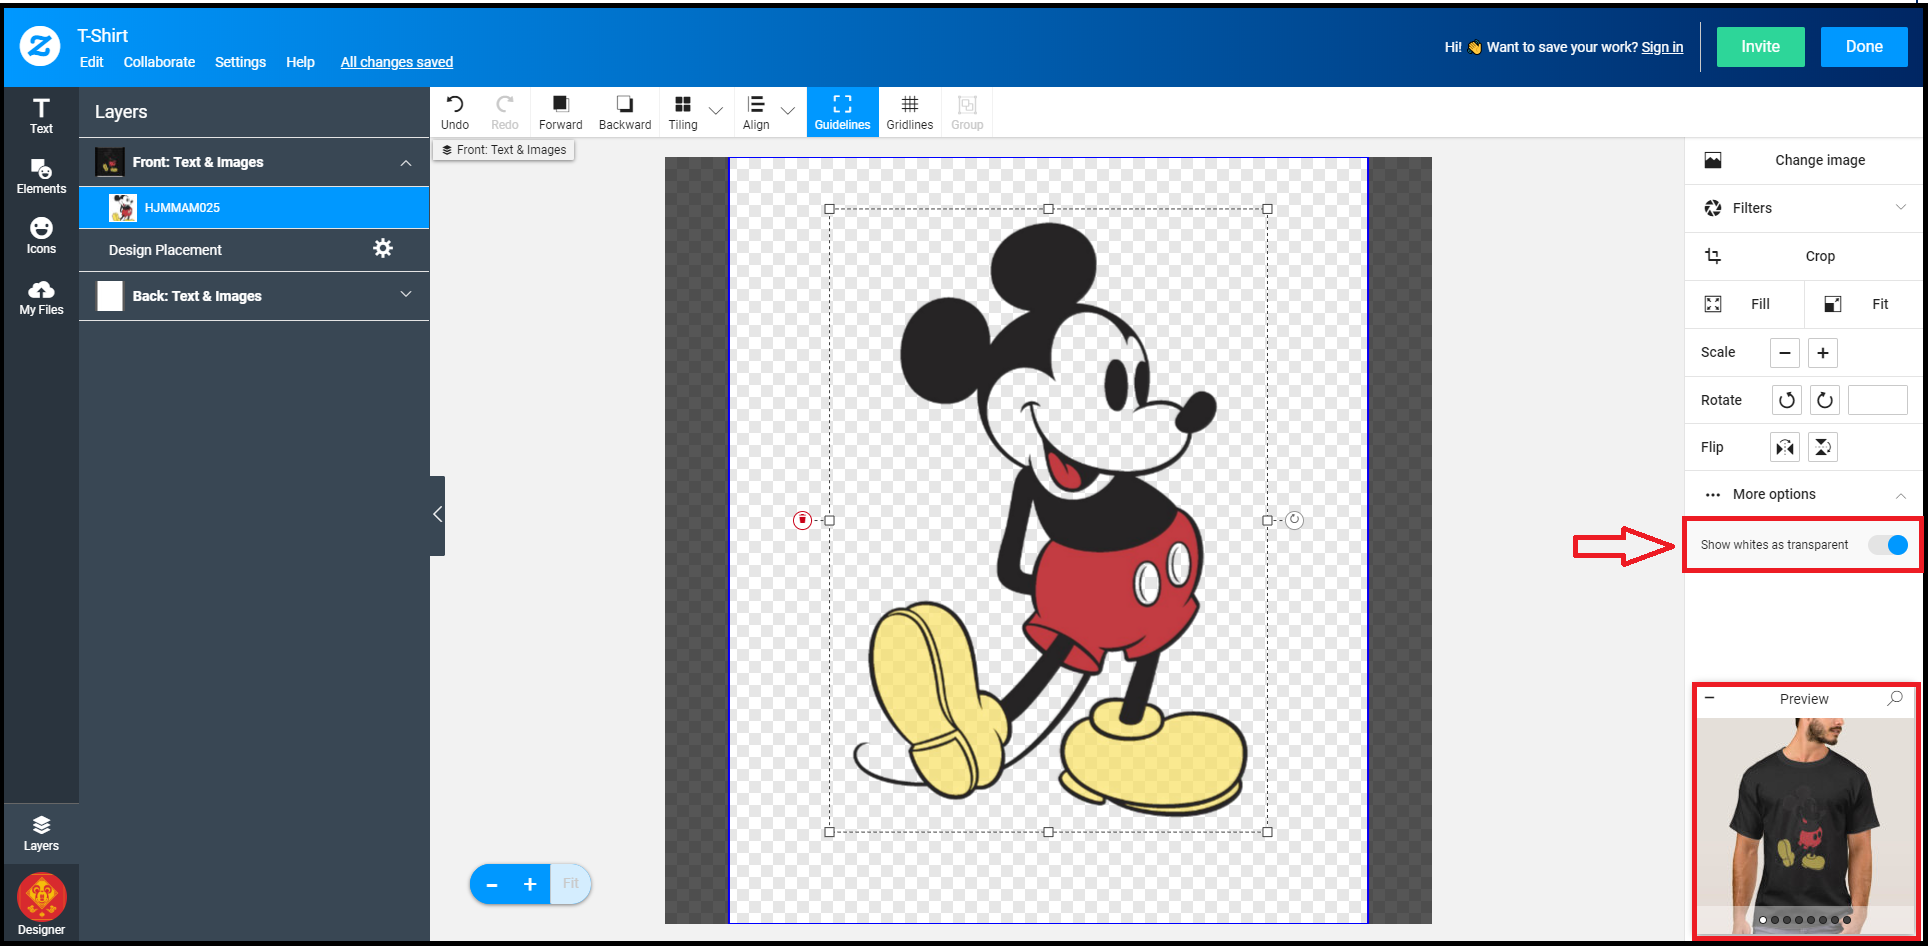 Create_Image_Mickey_Mouse3.png